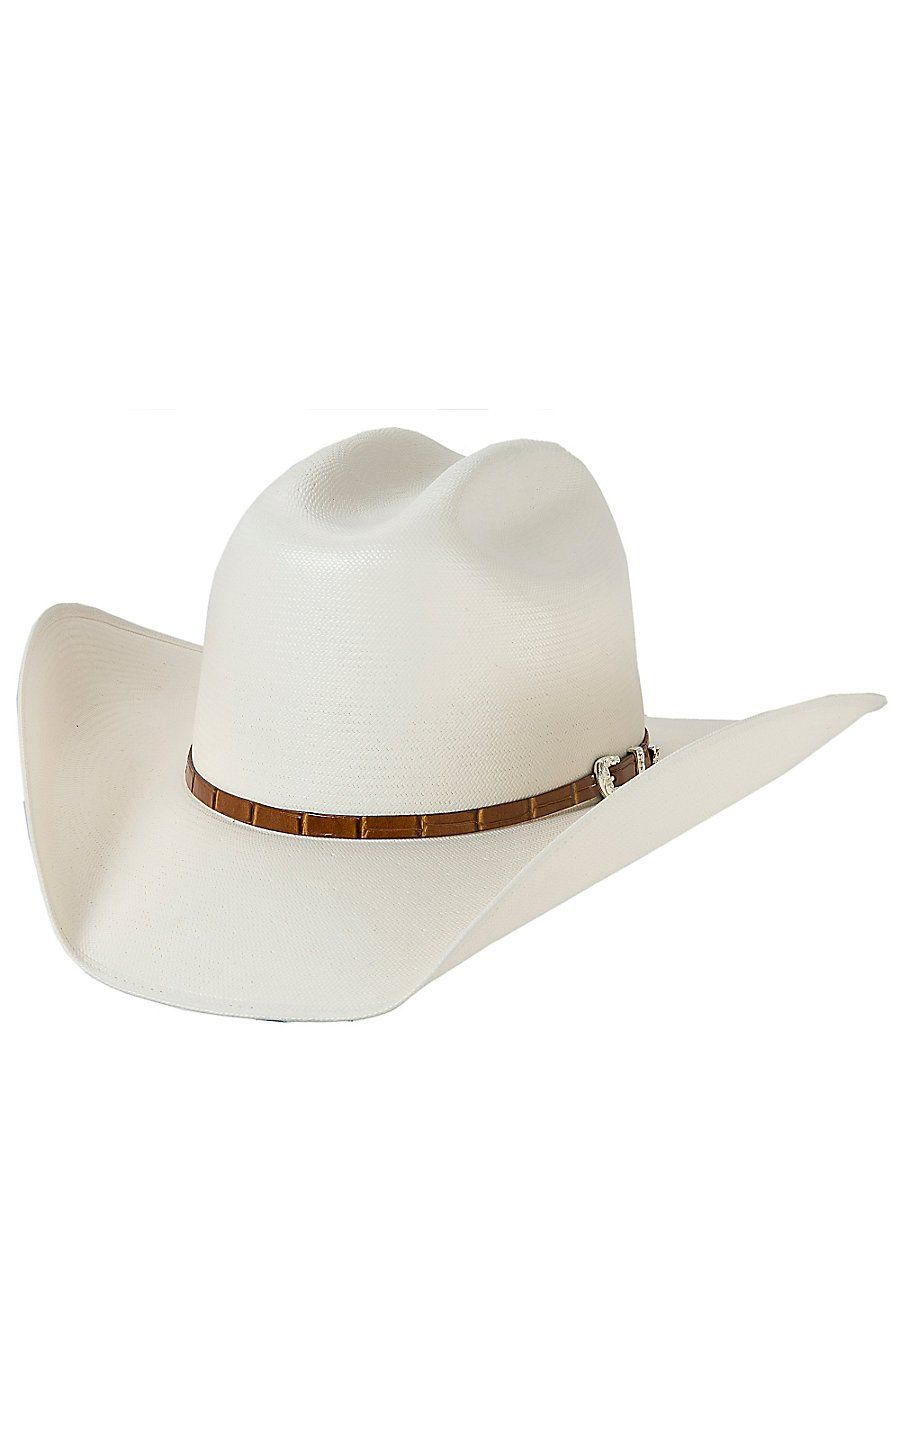 01ce504895d Stetson Stallion 100X Maximo Straw Cowboy Hat